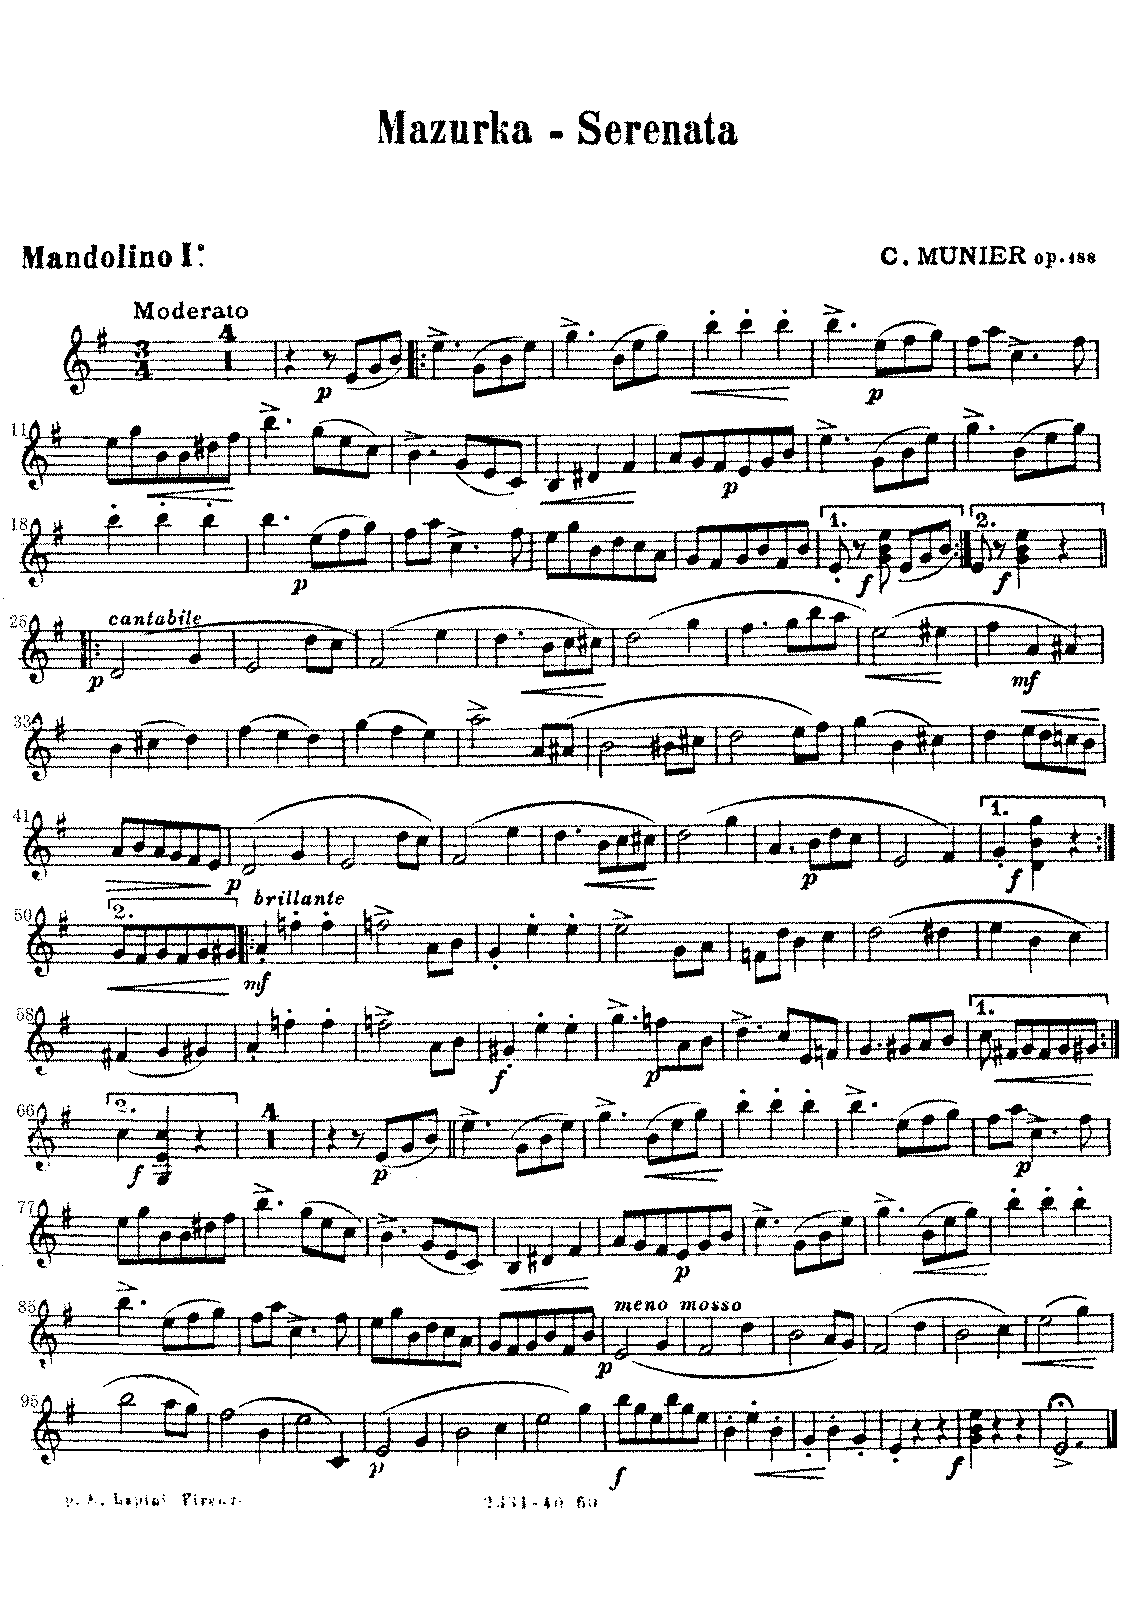 PMLP658907-Mazurka, Nelly Album Ⅲ.Serenata Op.188 C.Munier Mandolino 1º. part.pdf